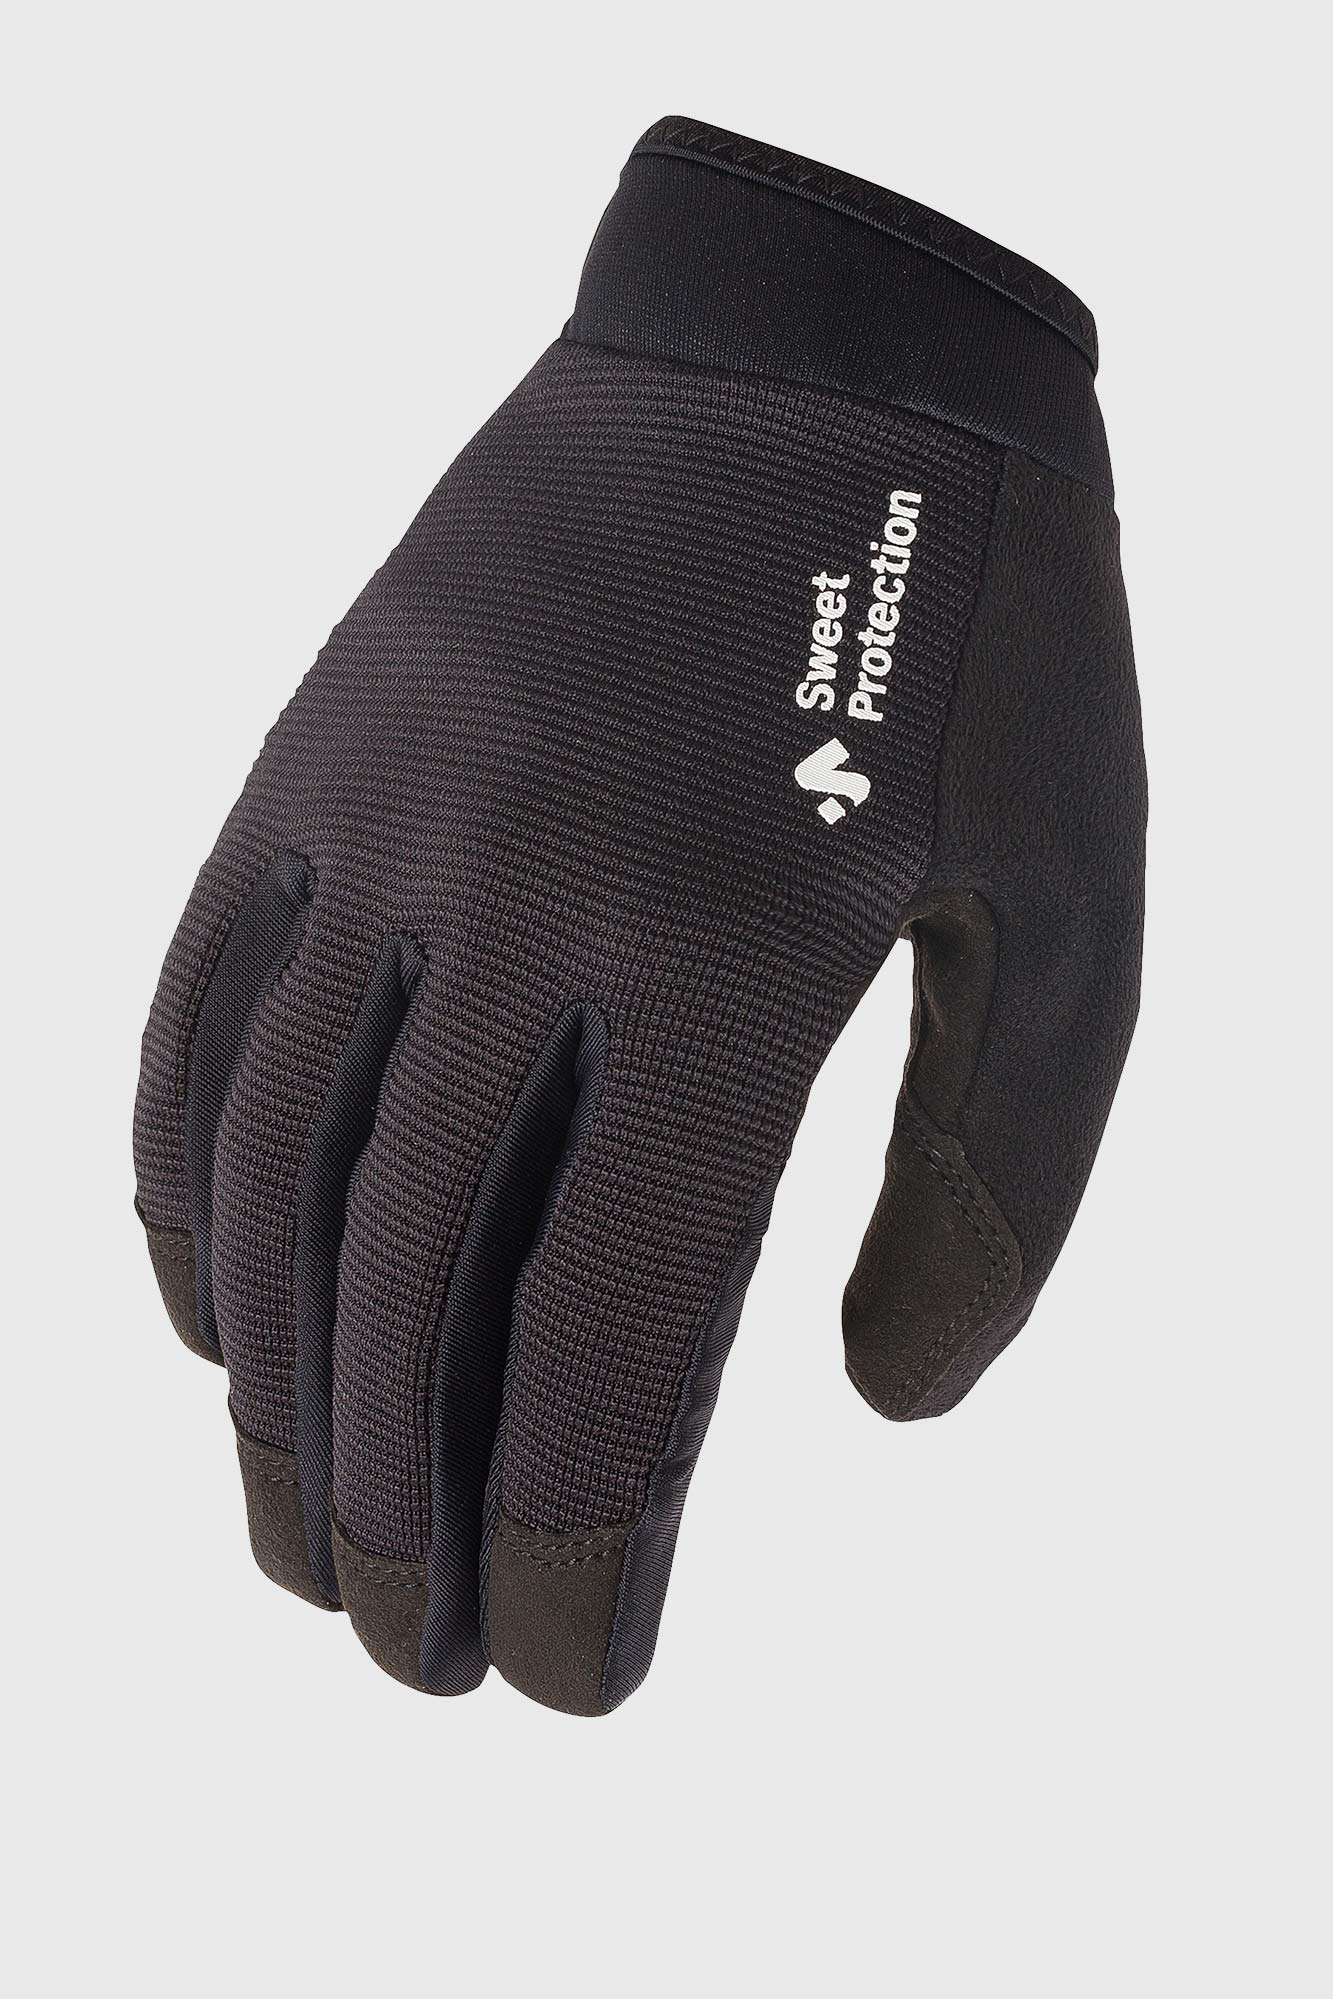 Sweet Protection Womens Hunter Glove - Black